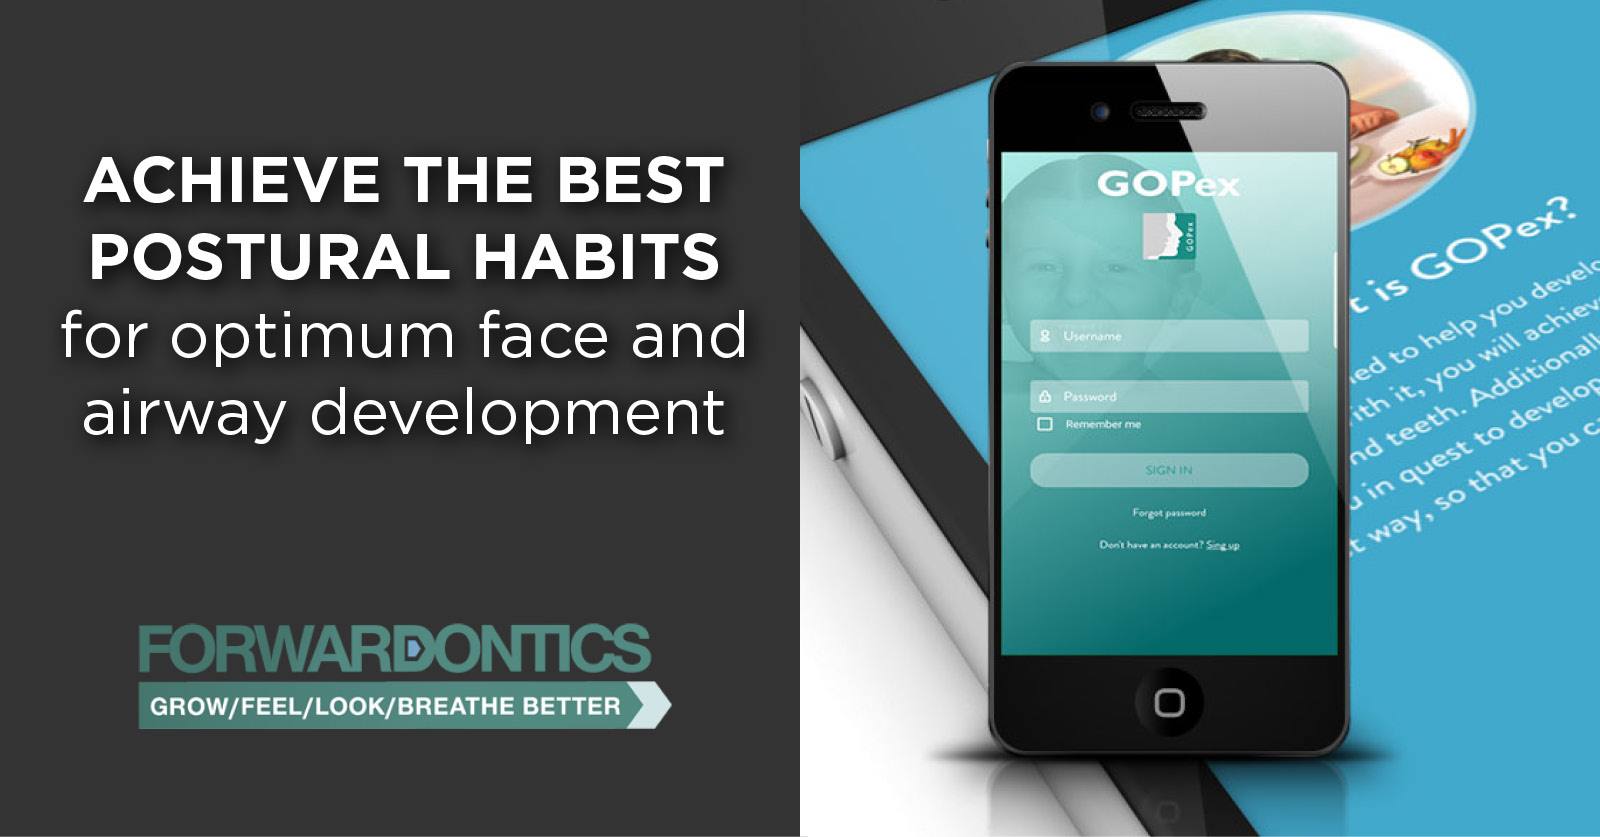 New App to achieve the best postural habits for optimum face and airway development